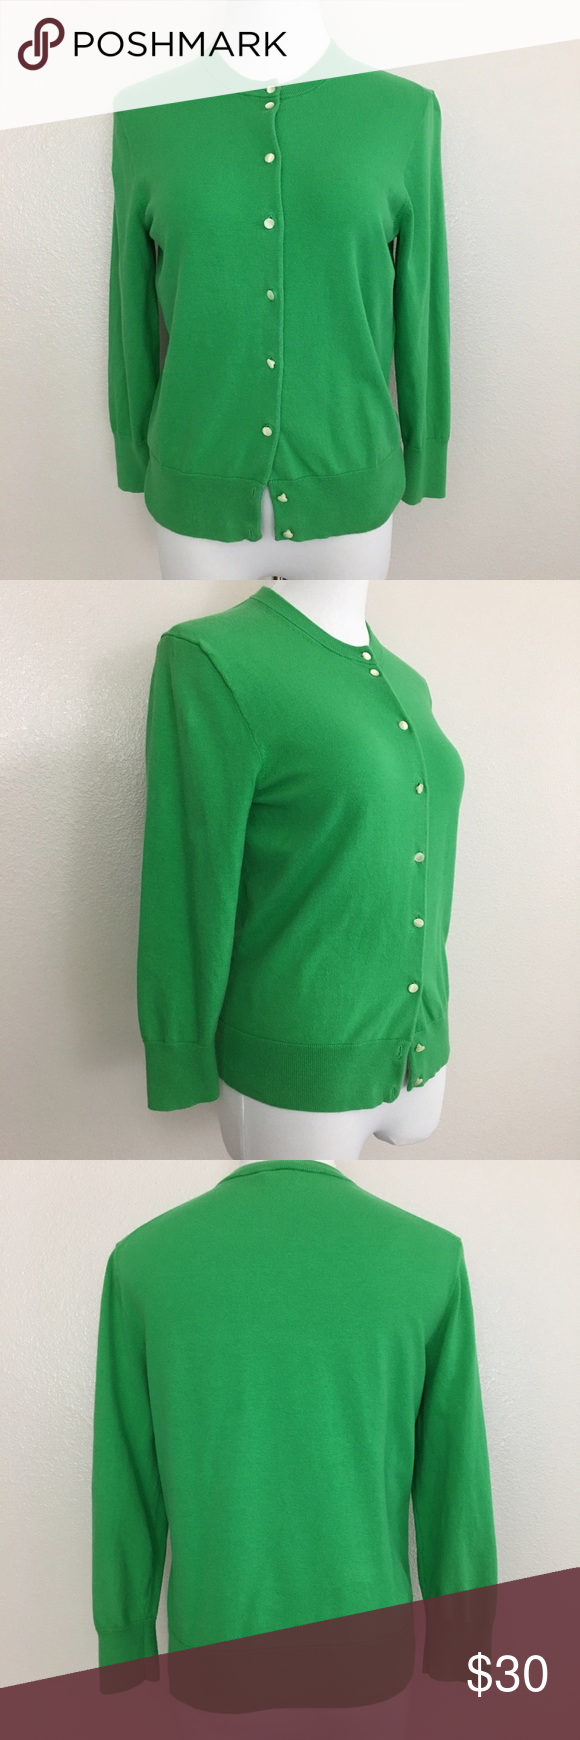 """J. Crew Jackie Cardigan, Classic, Green, Large J. Crew """"Jackie"""" classic cardigan in green color. Style #85613  Fabric is made of 66% cotton, 29% nylon and 5% spandex. Machine washable.  Size Large Armpit to armpit laid flat 18.5"""" Length 22"""" Approximate only.  Excellent condition.  No stains or holes. Freshly washed.  Stored in a smoke and pet free household.  Please see all pictures in details or ask any questions to avoid return.  Check out my store for other items on sale! J. Crew Sweaters…"""